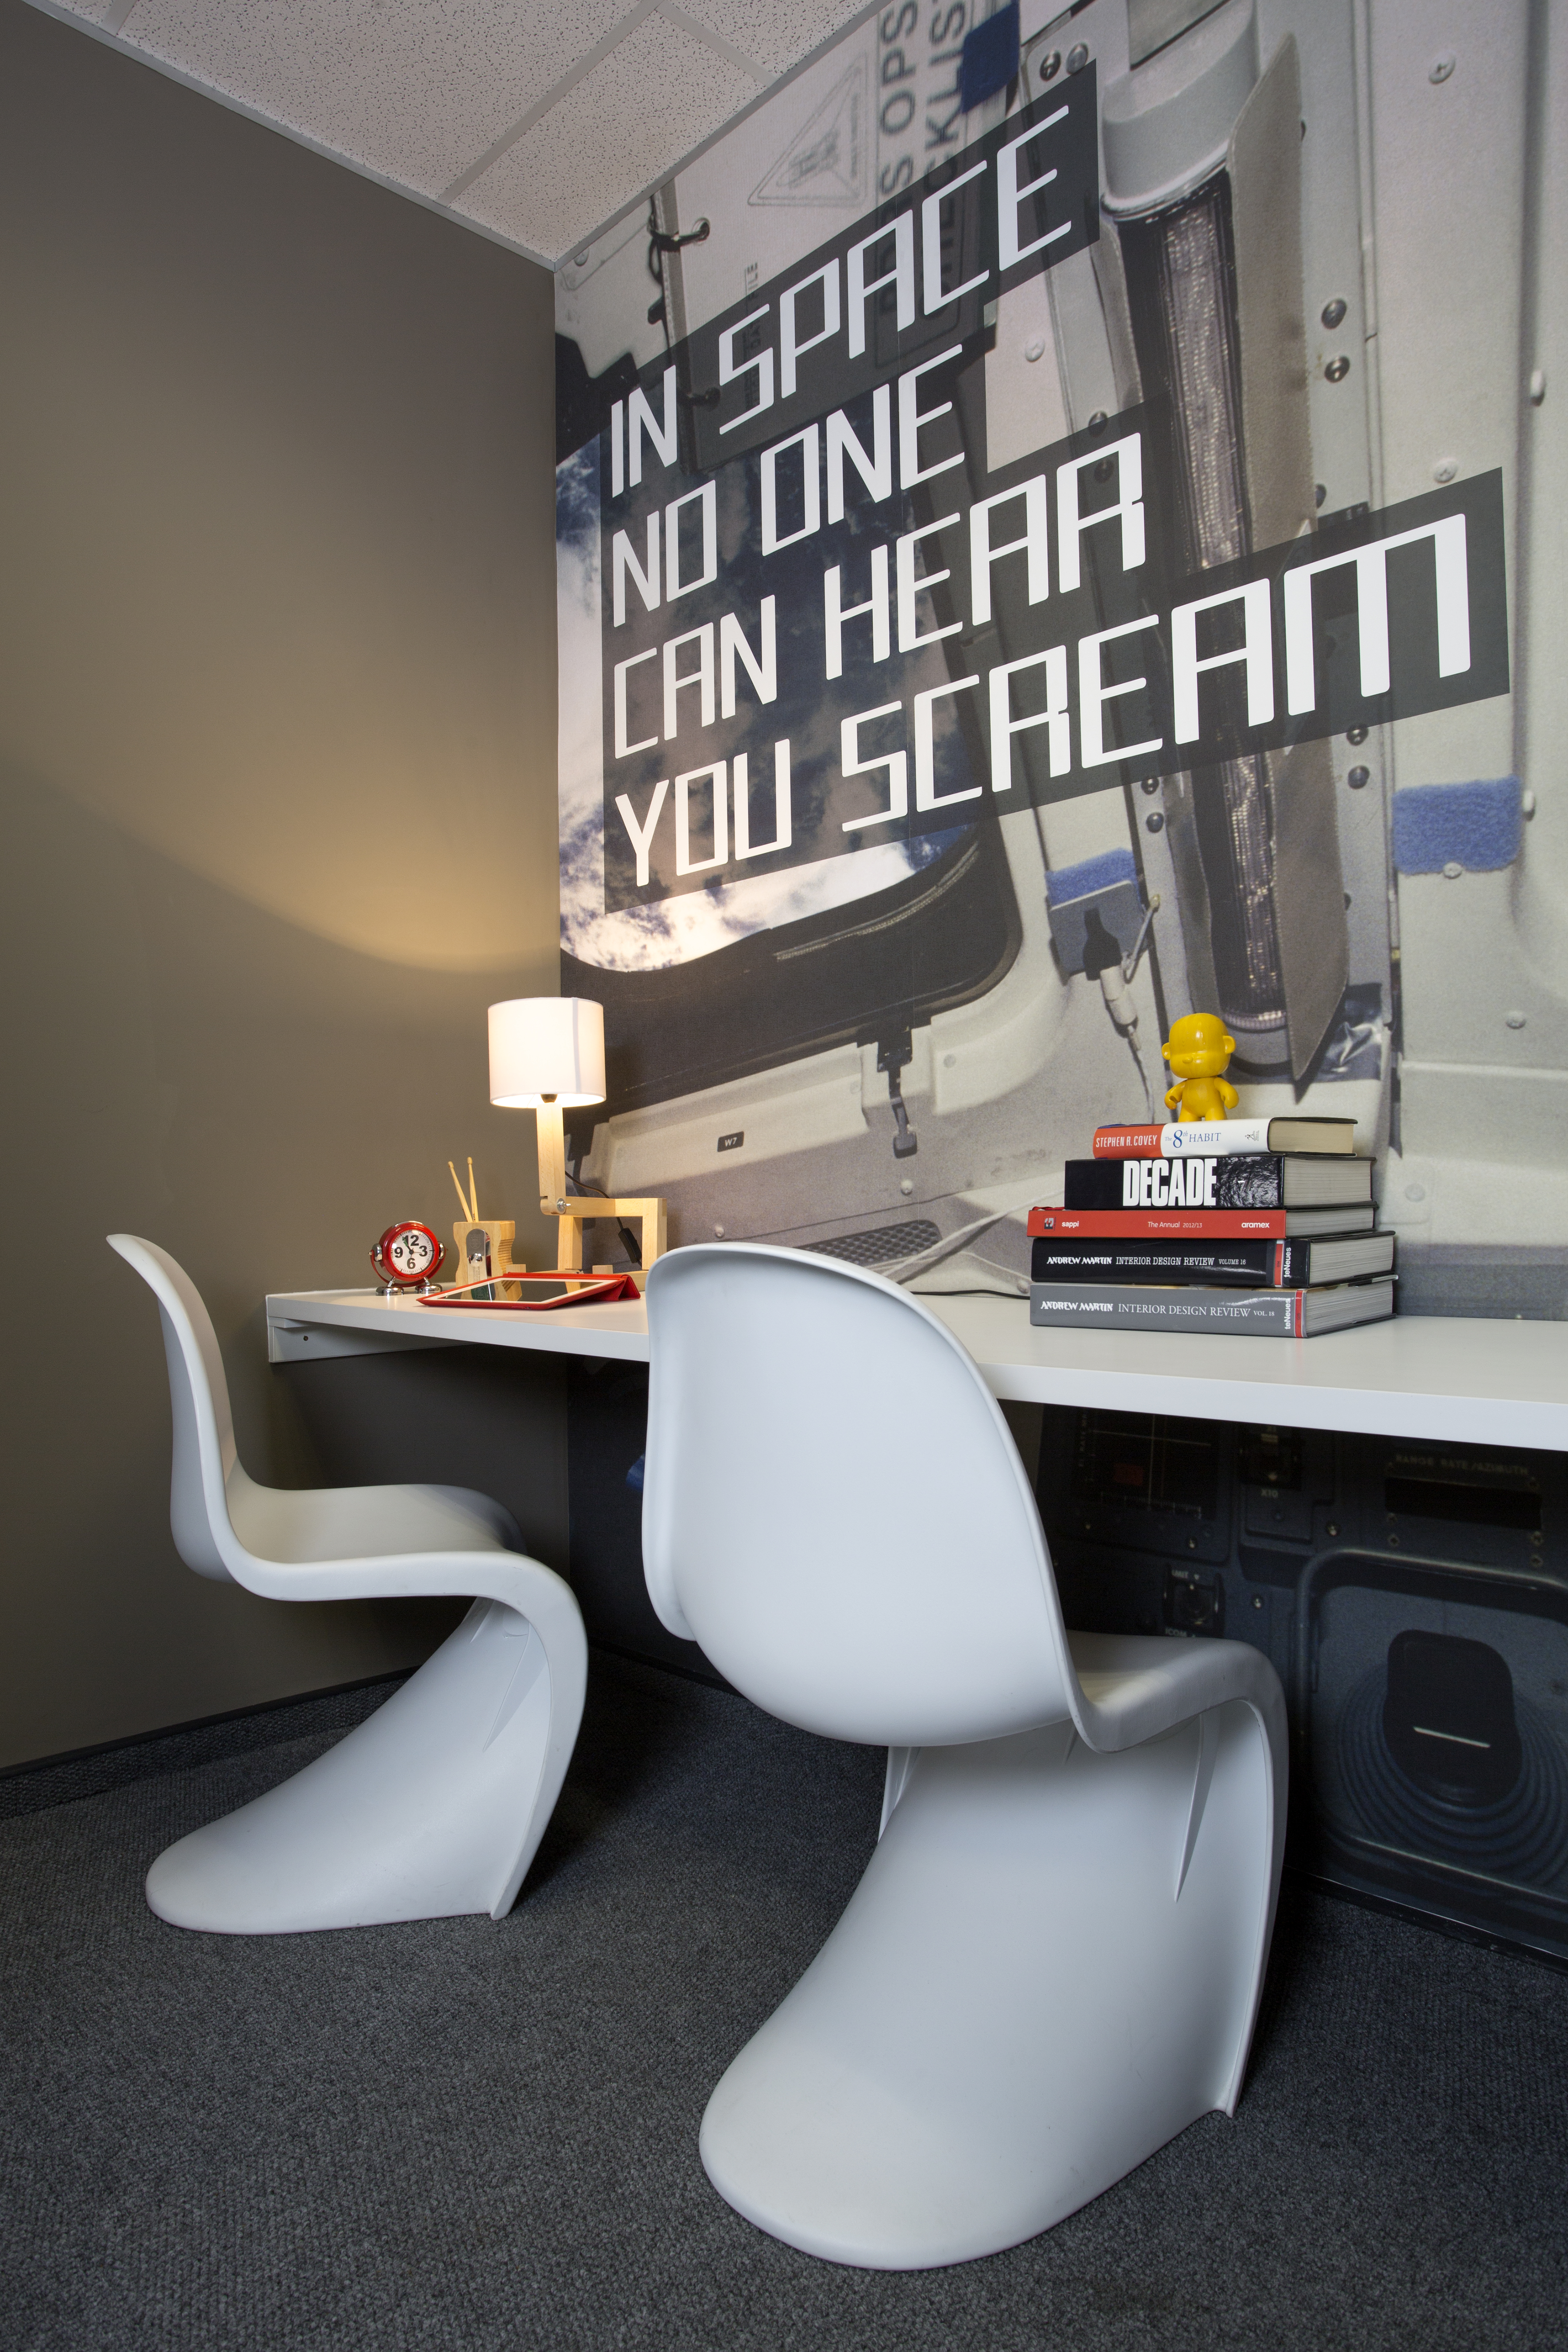 A desk with a computer in a room Description generated with high confidence